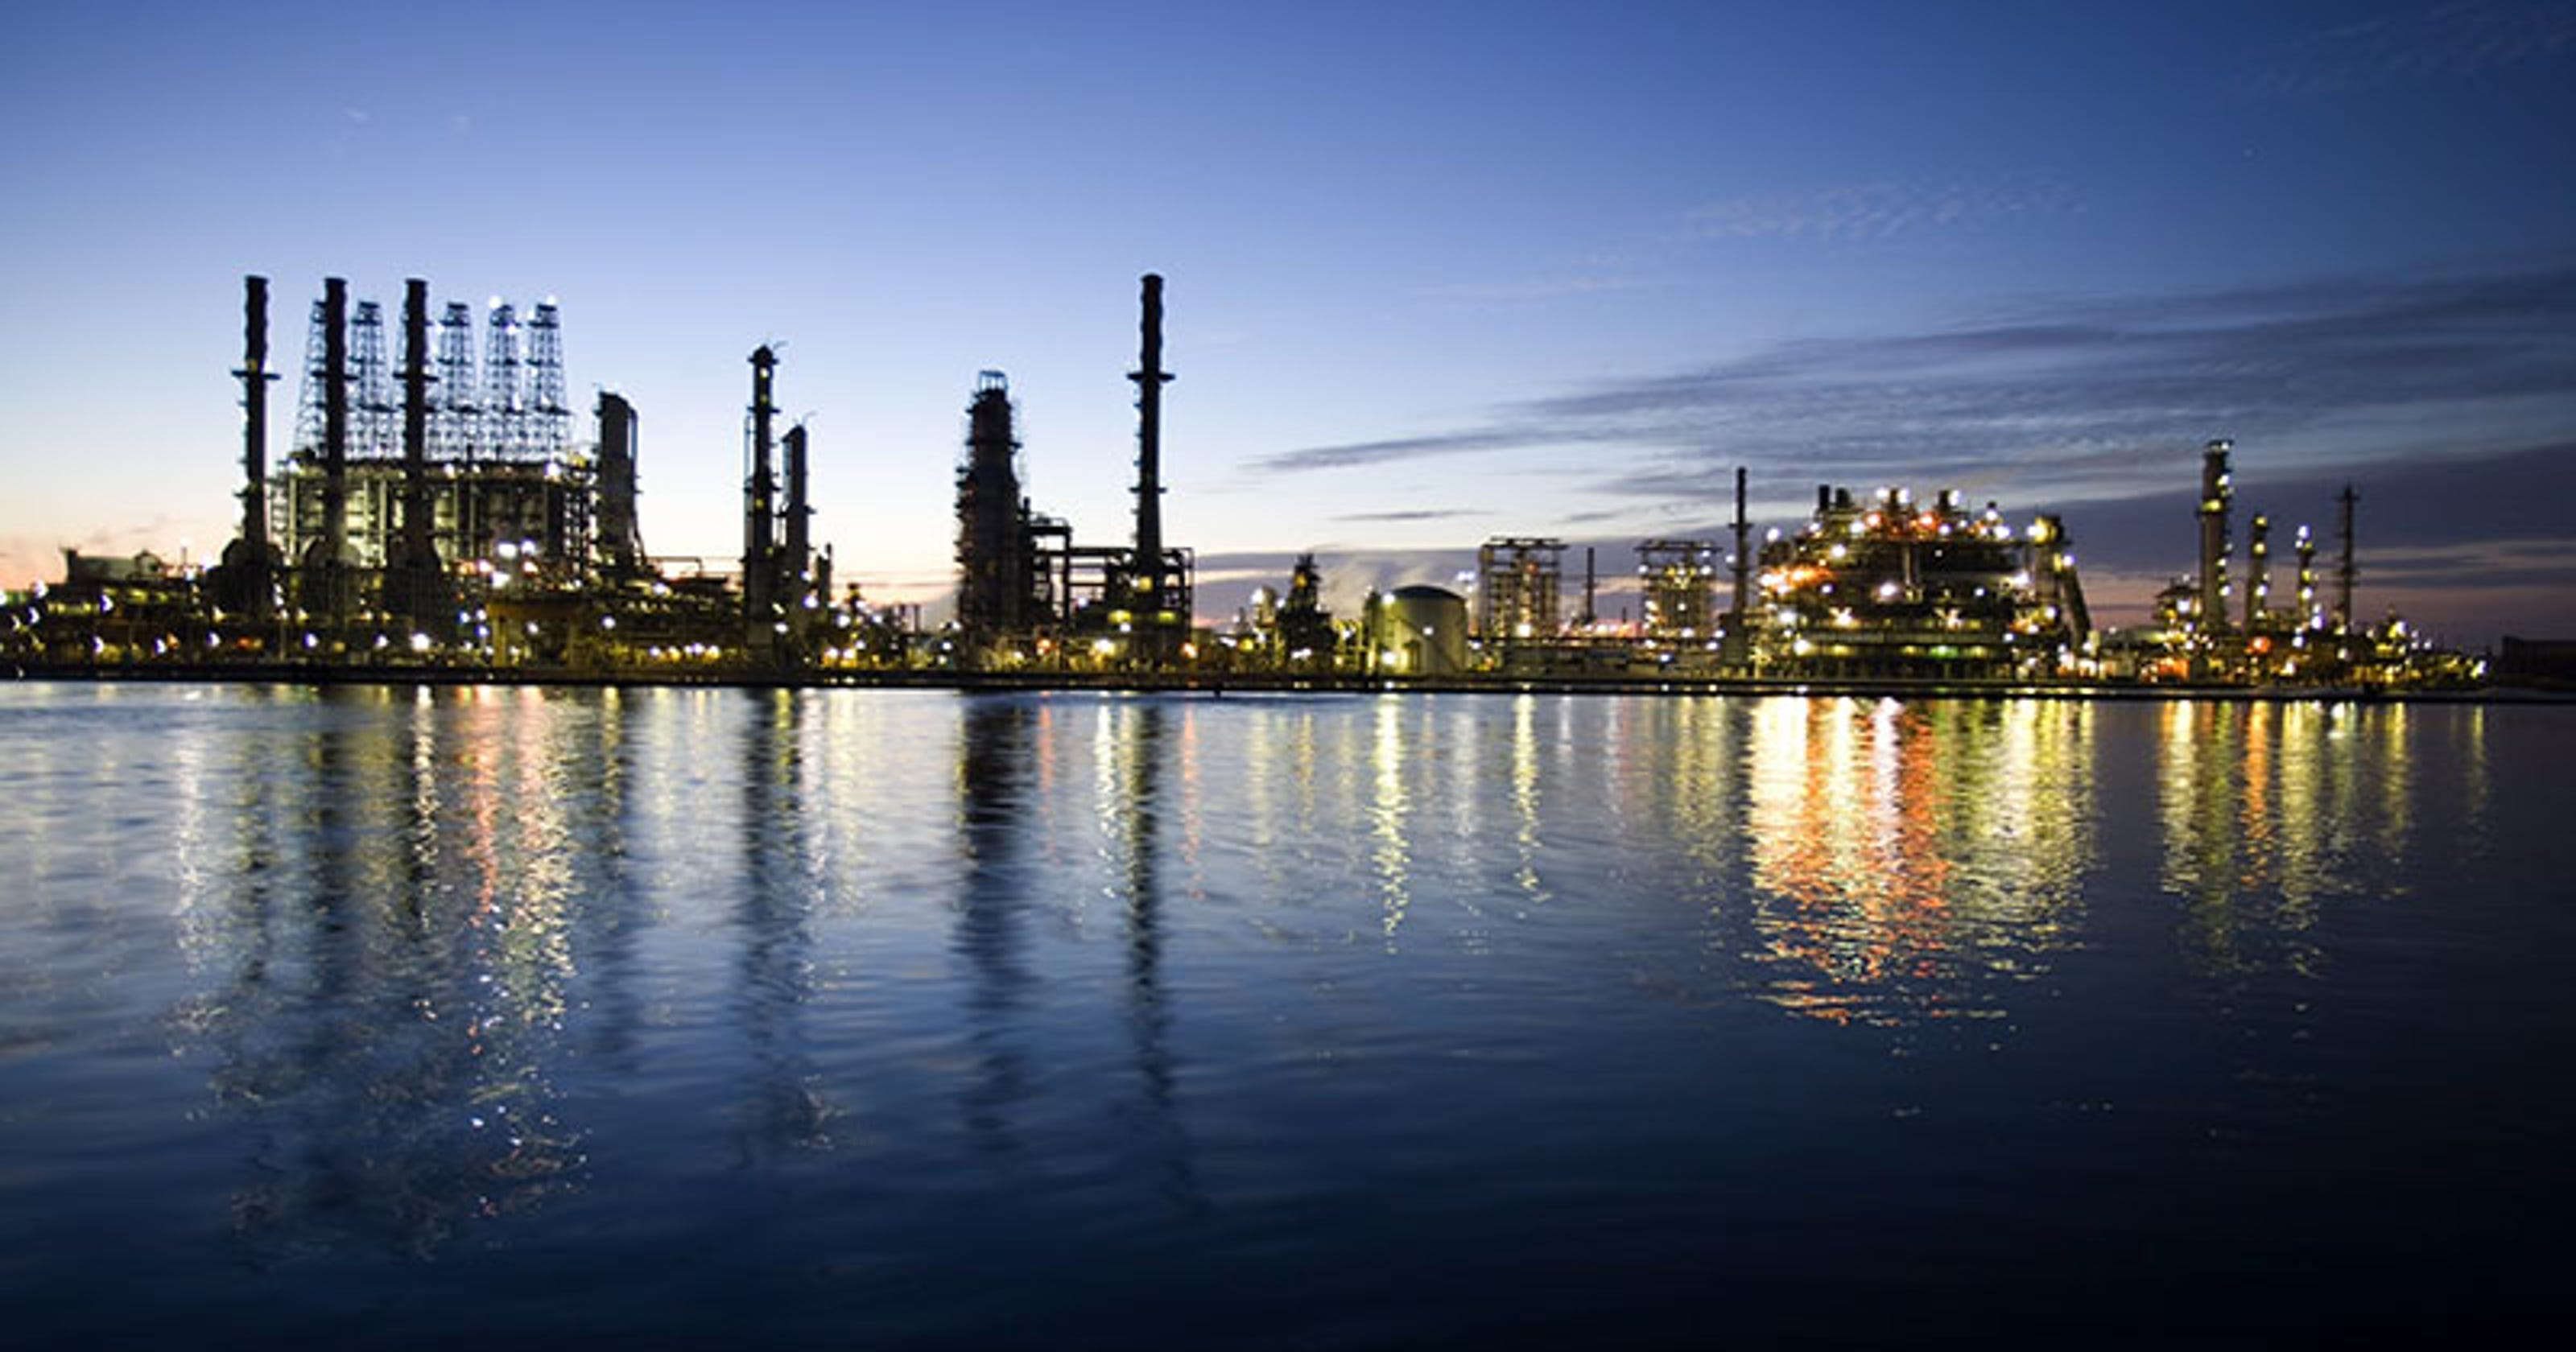 pascagoula refinery reports potential security issue